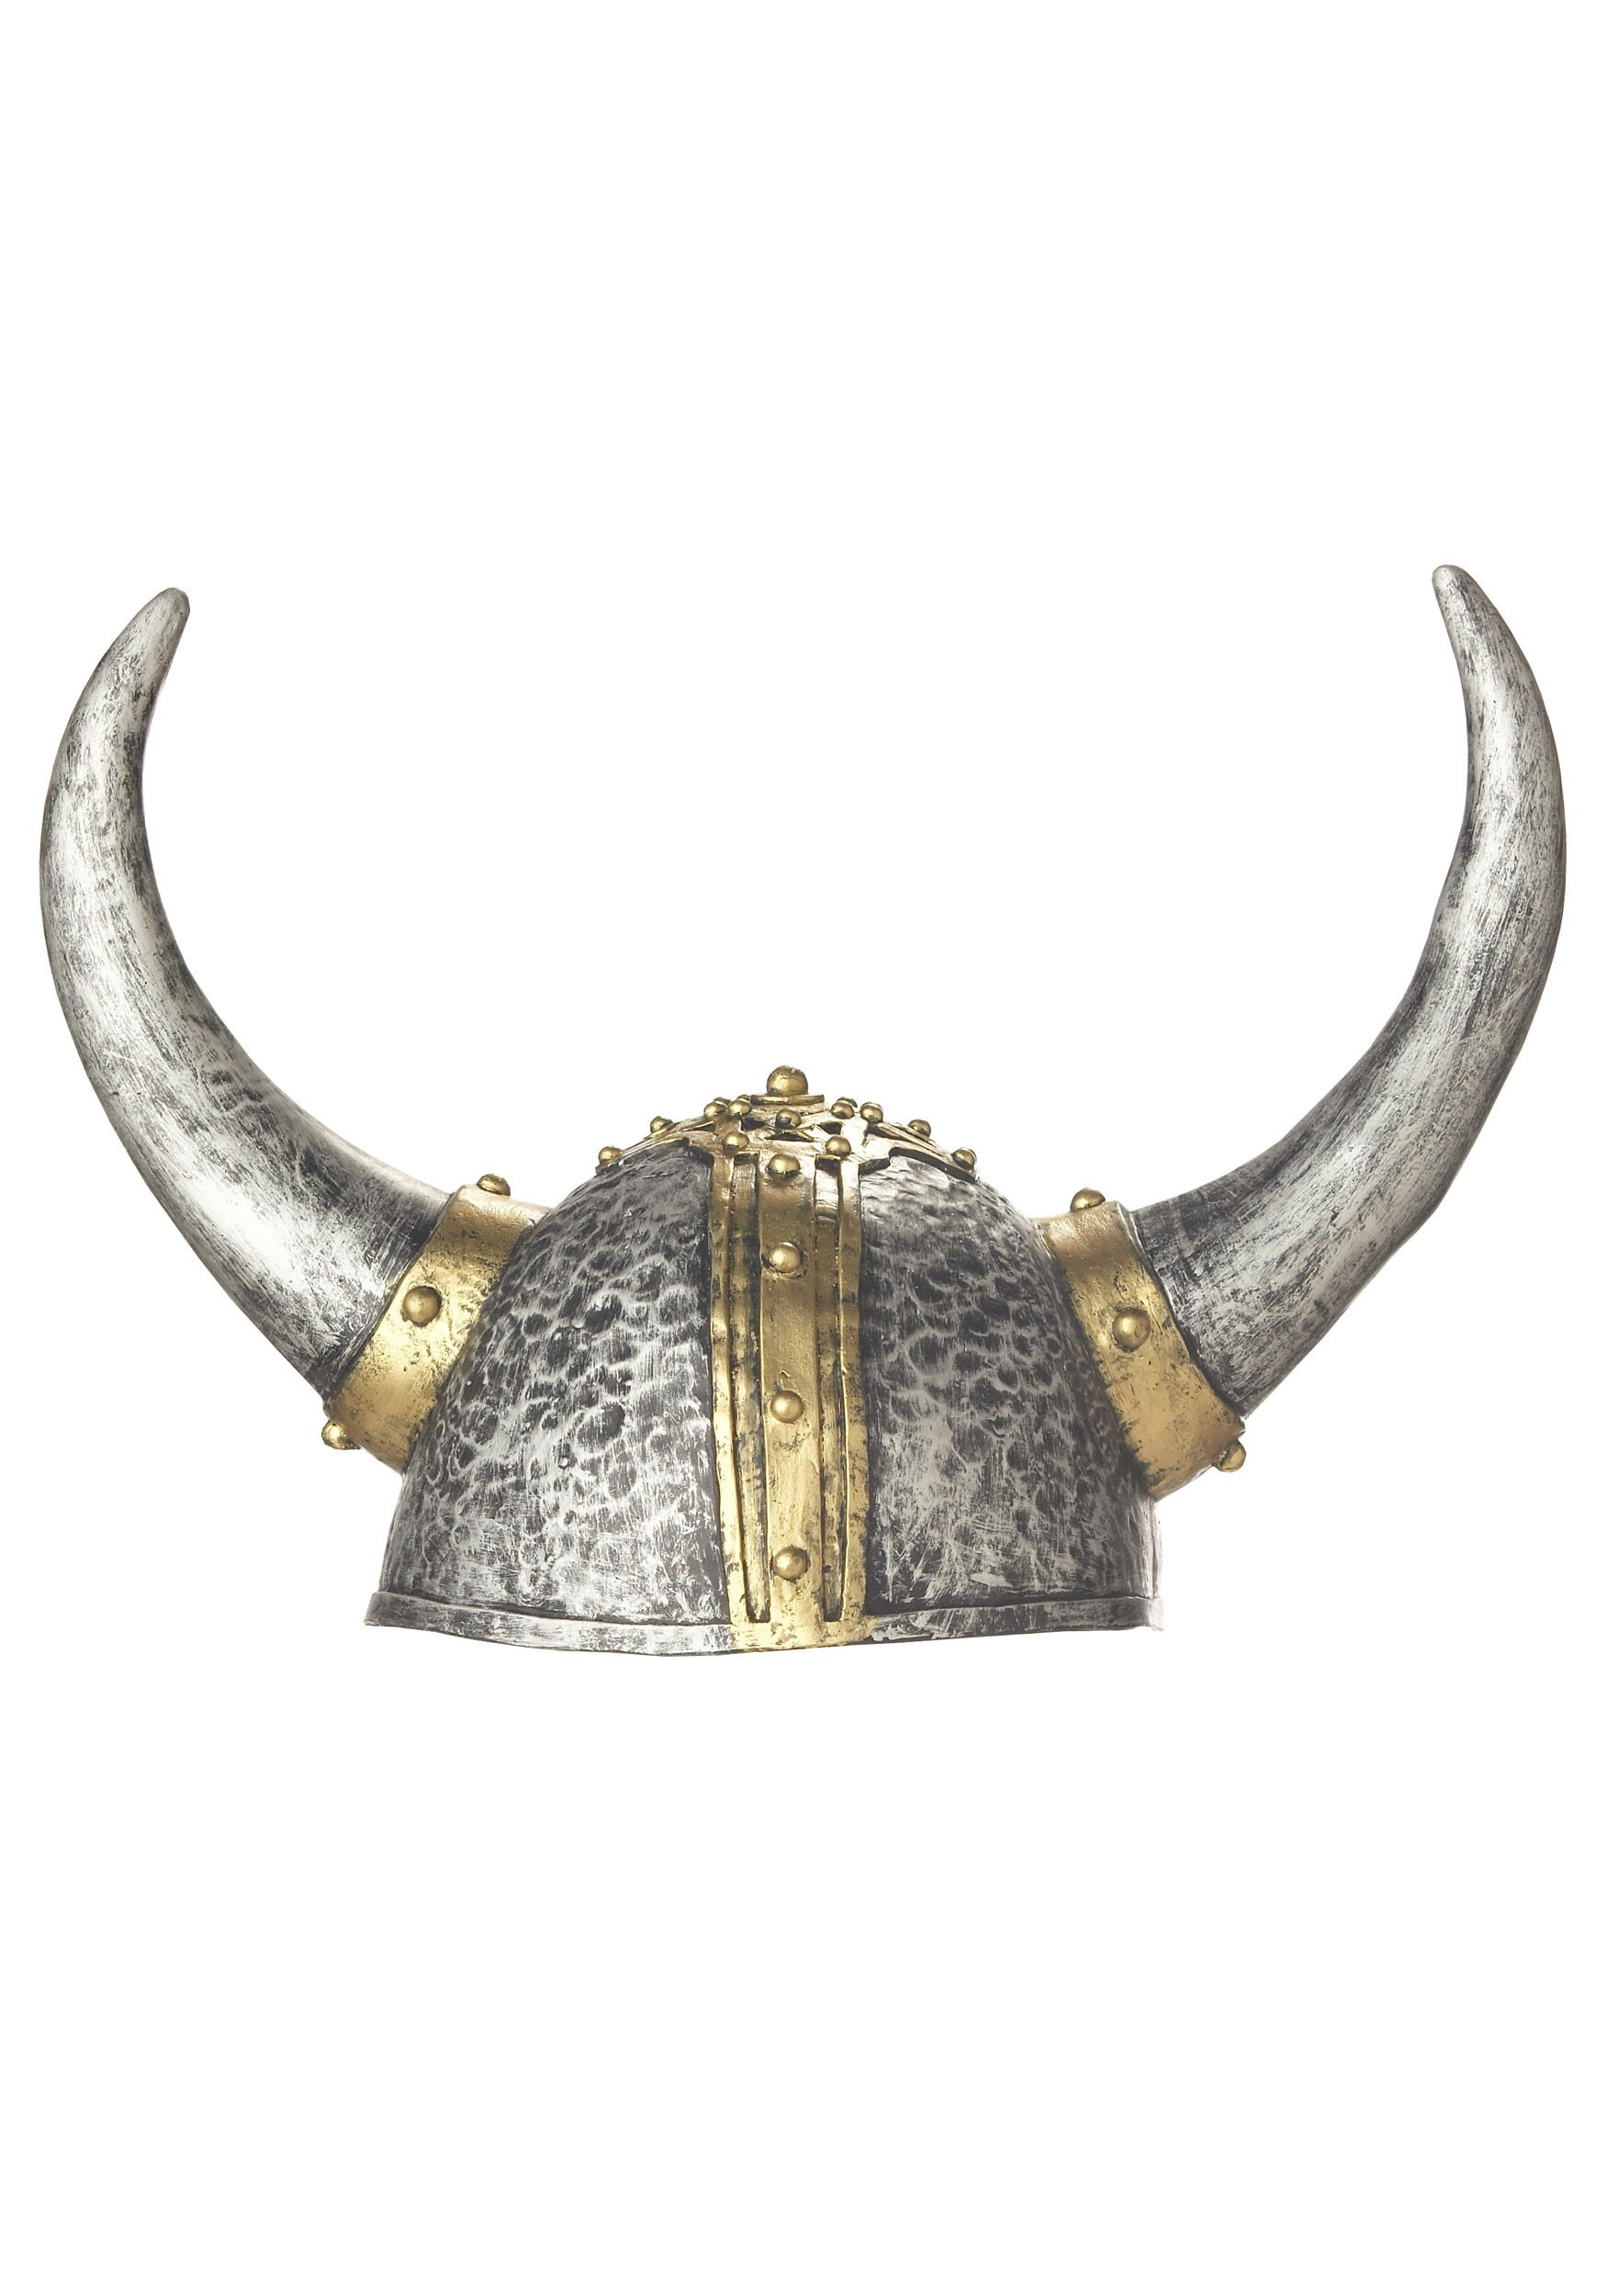 Horned Viking HelmetHorned Helmet Viking